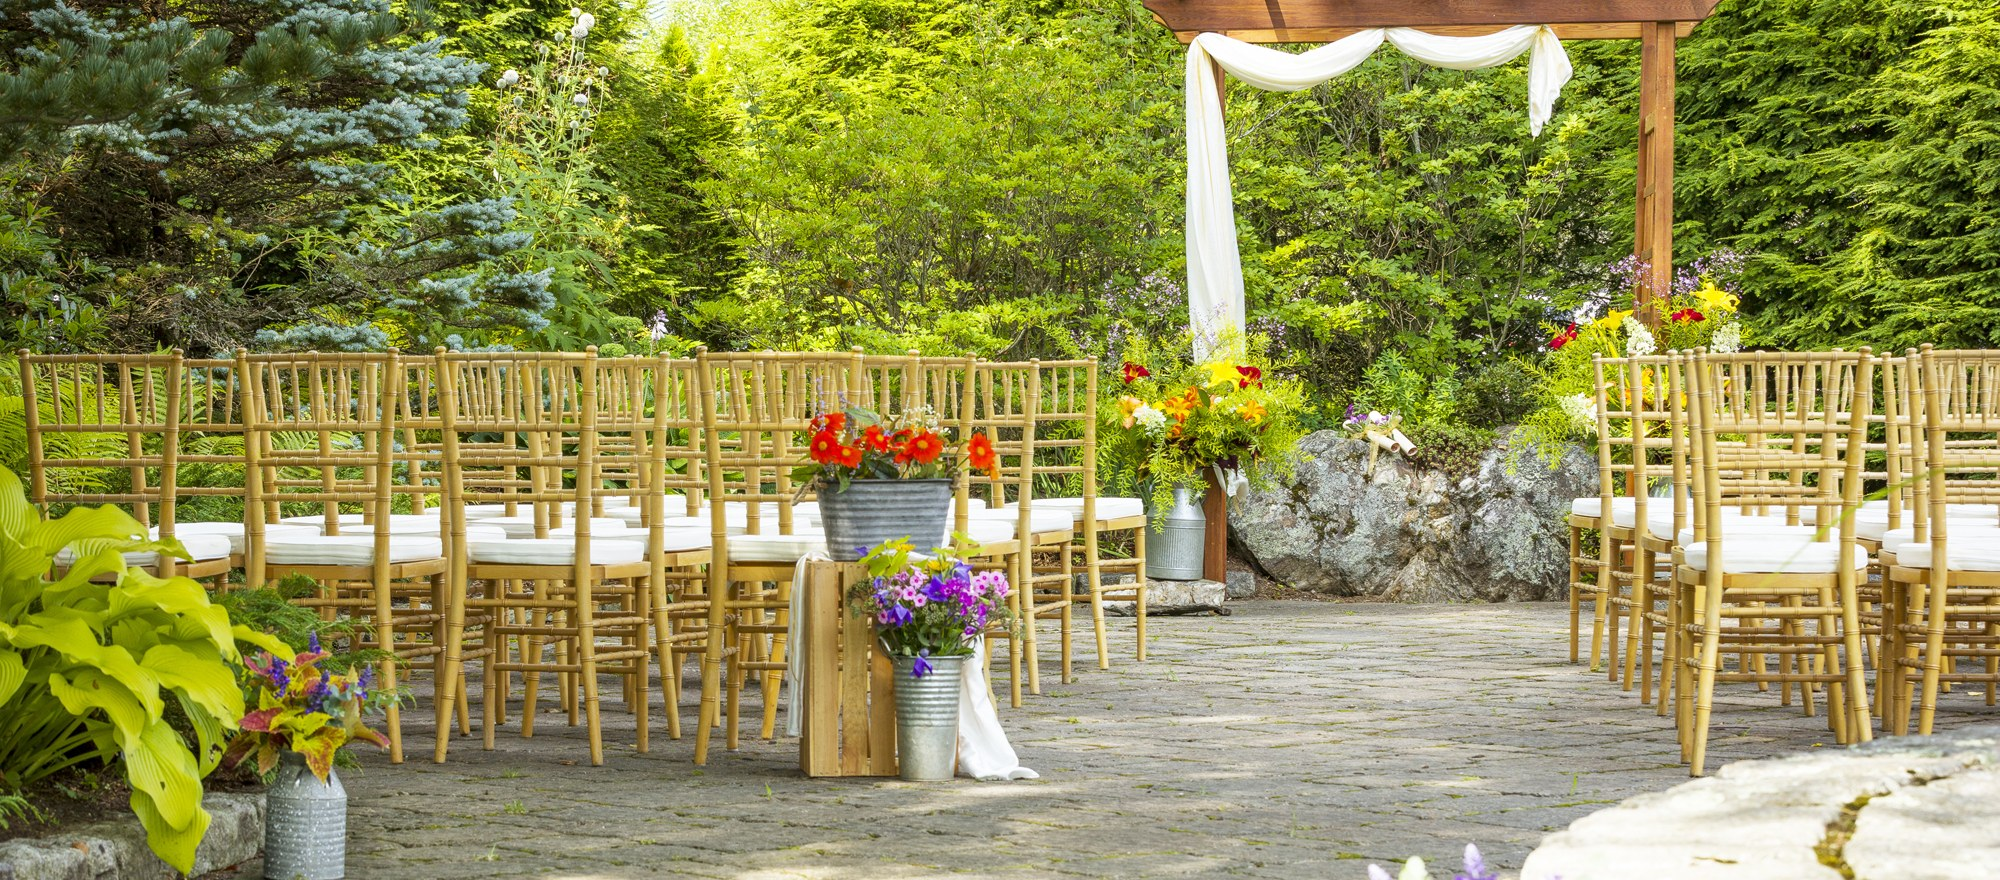 Chairs set up for wedding ceremony at Lake Morey in New Hampshire